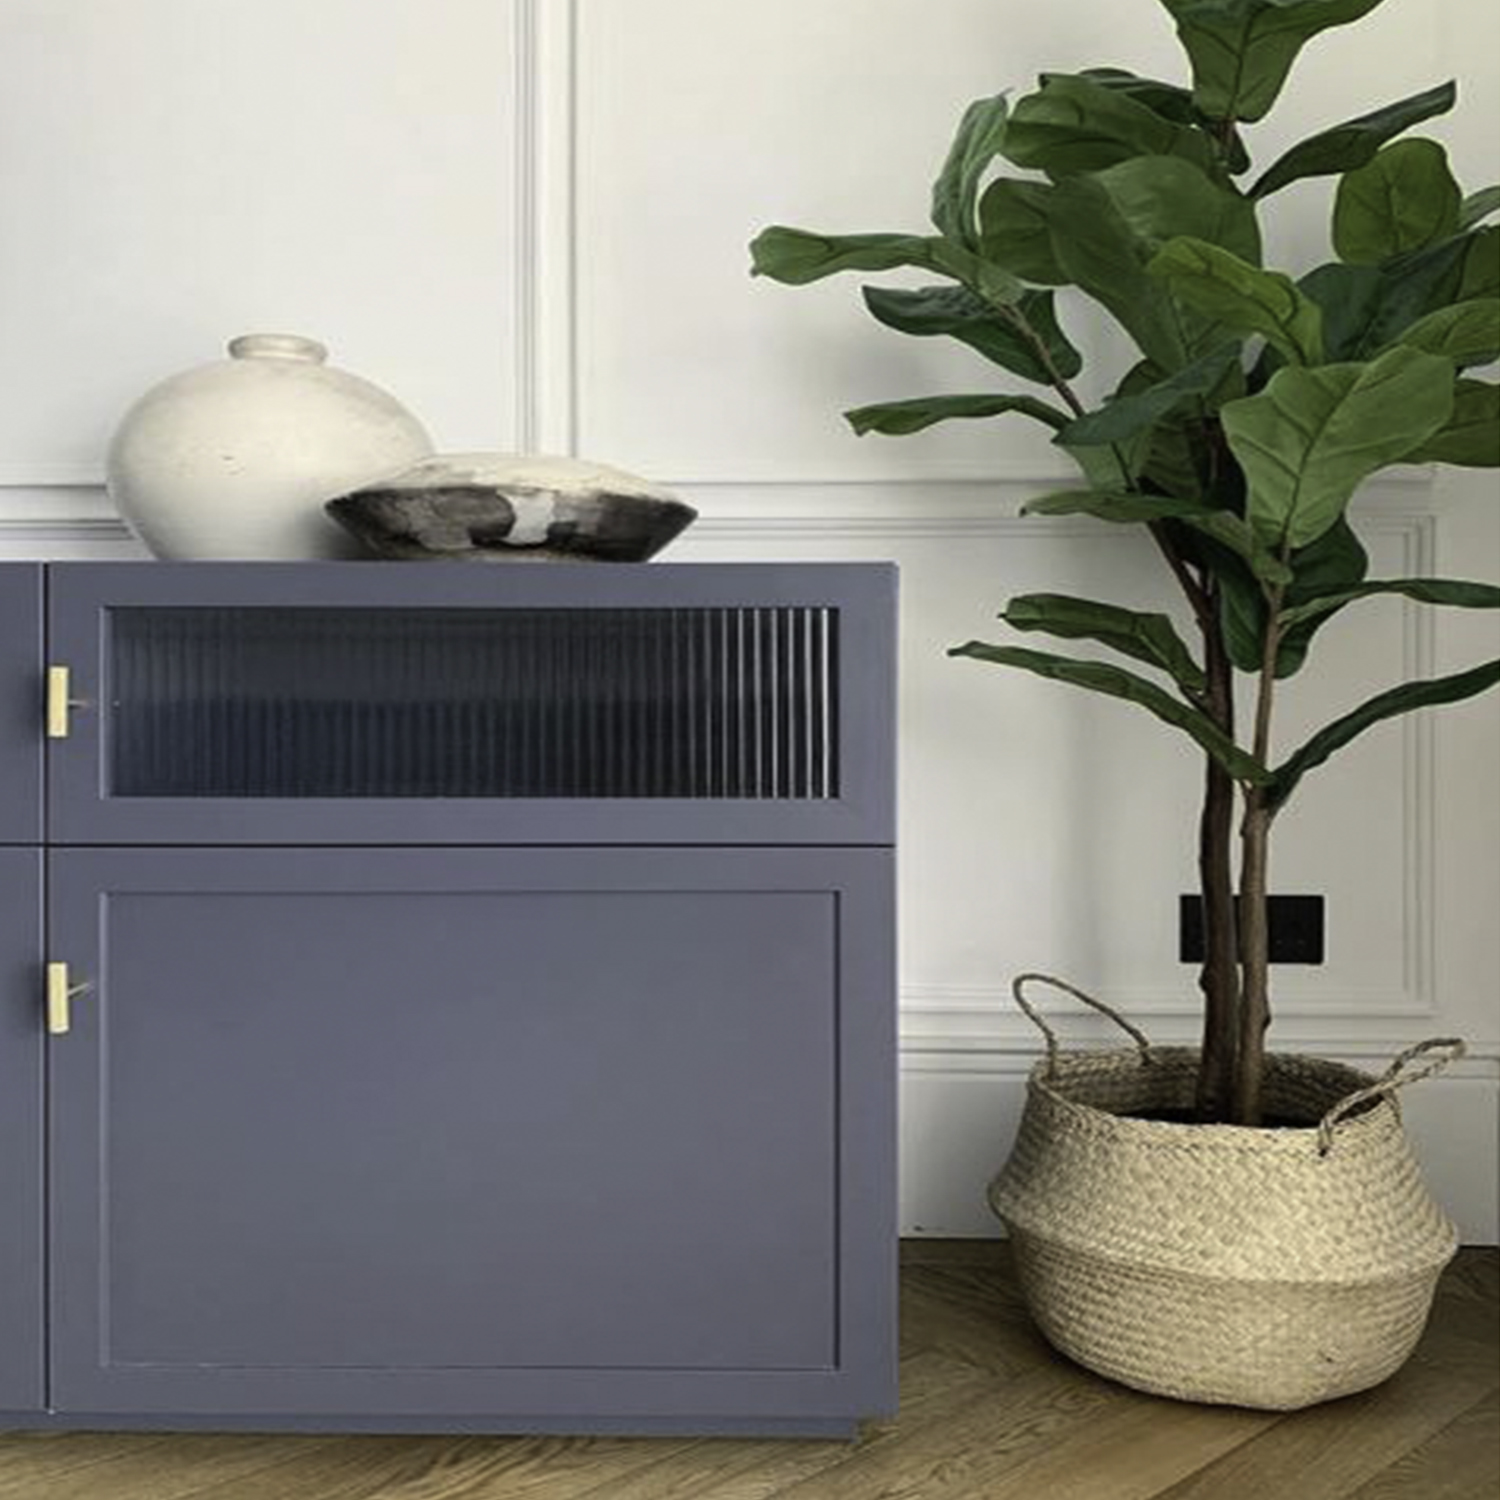 skyscraper tbar handles on blue sideboard against white wall